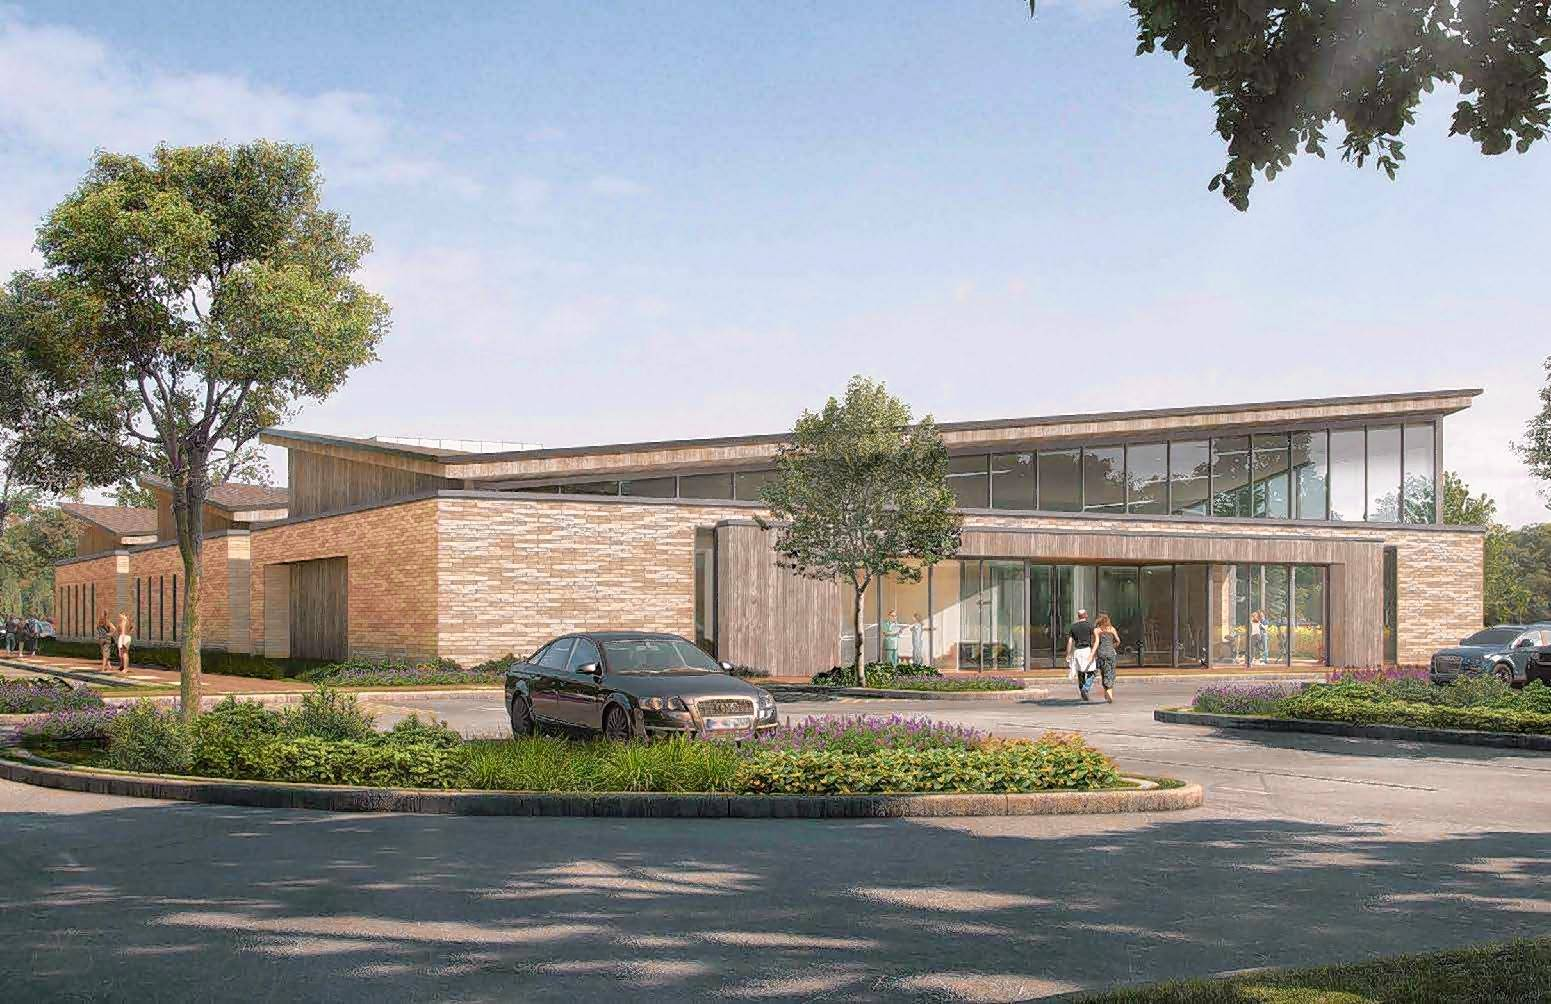 Krusinski Construction breaks ground on rehab center